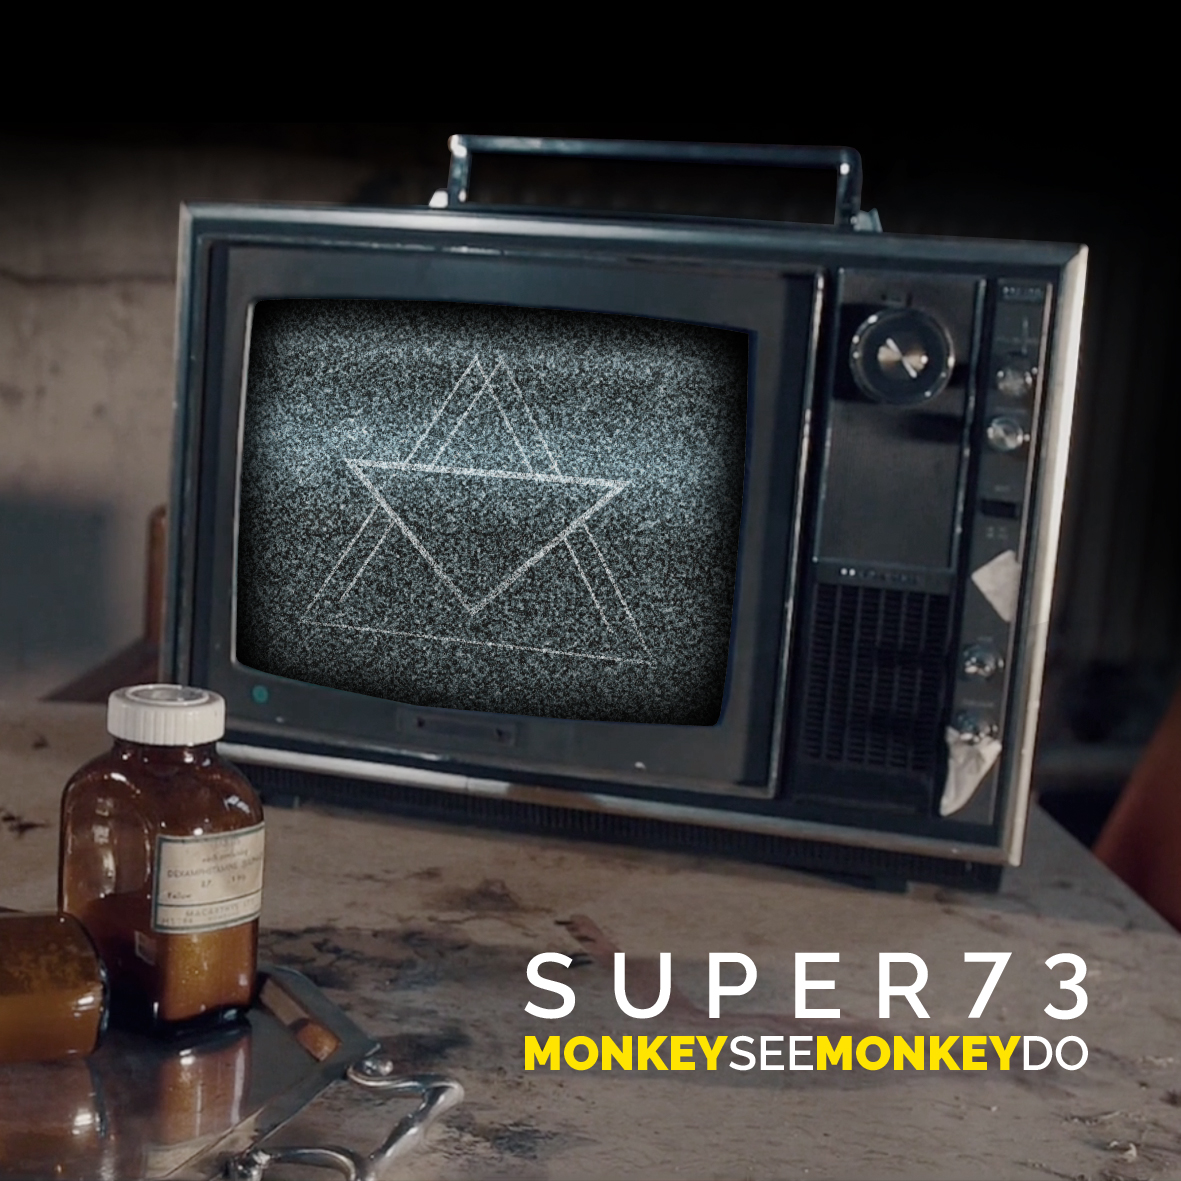 Super 73 Monkey See Monkey Do